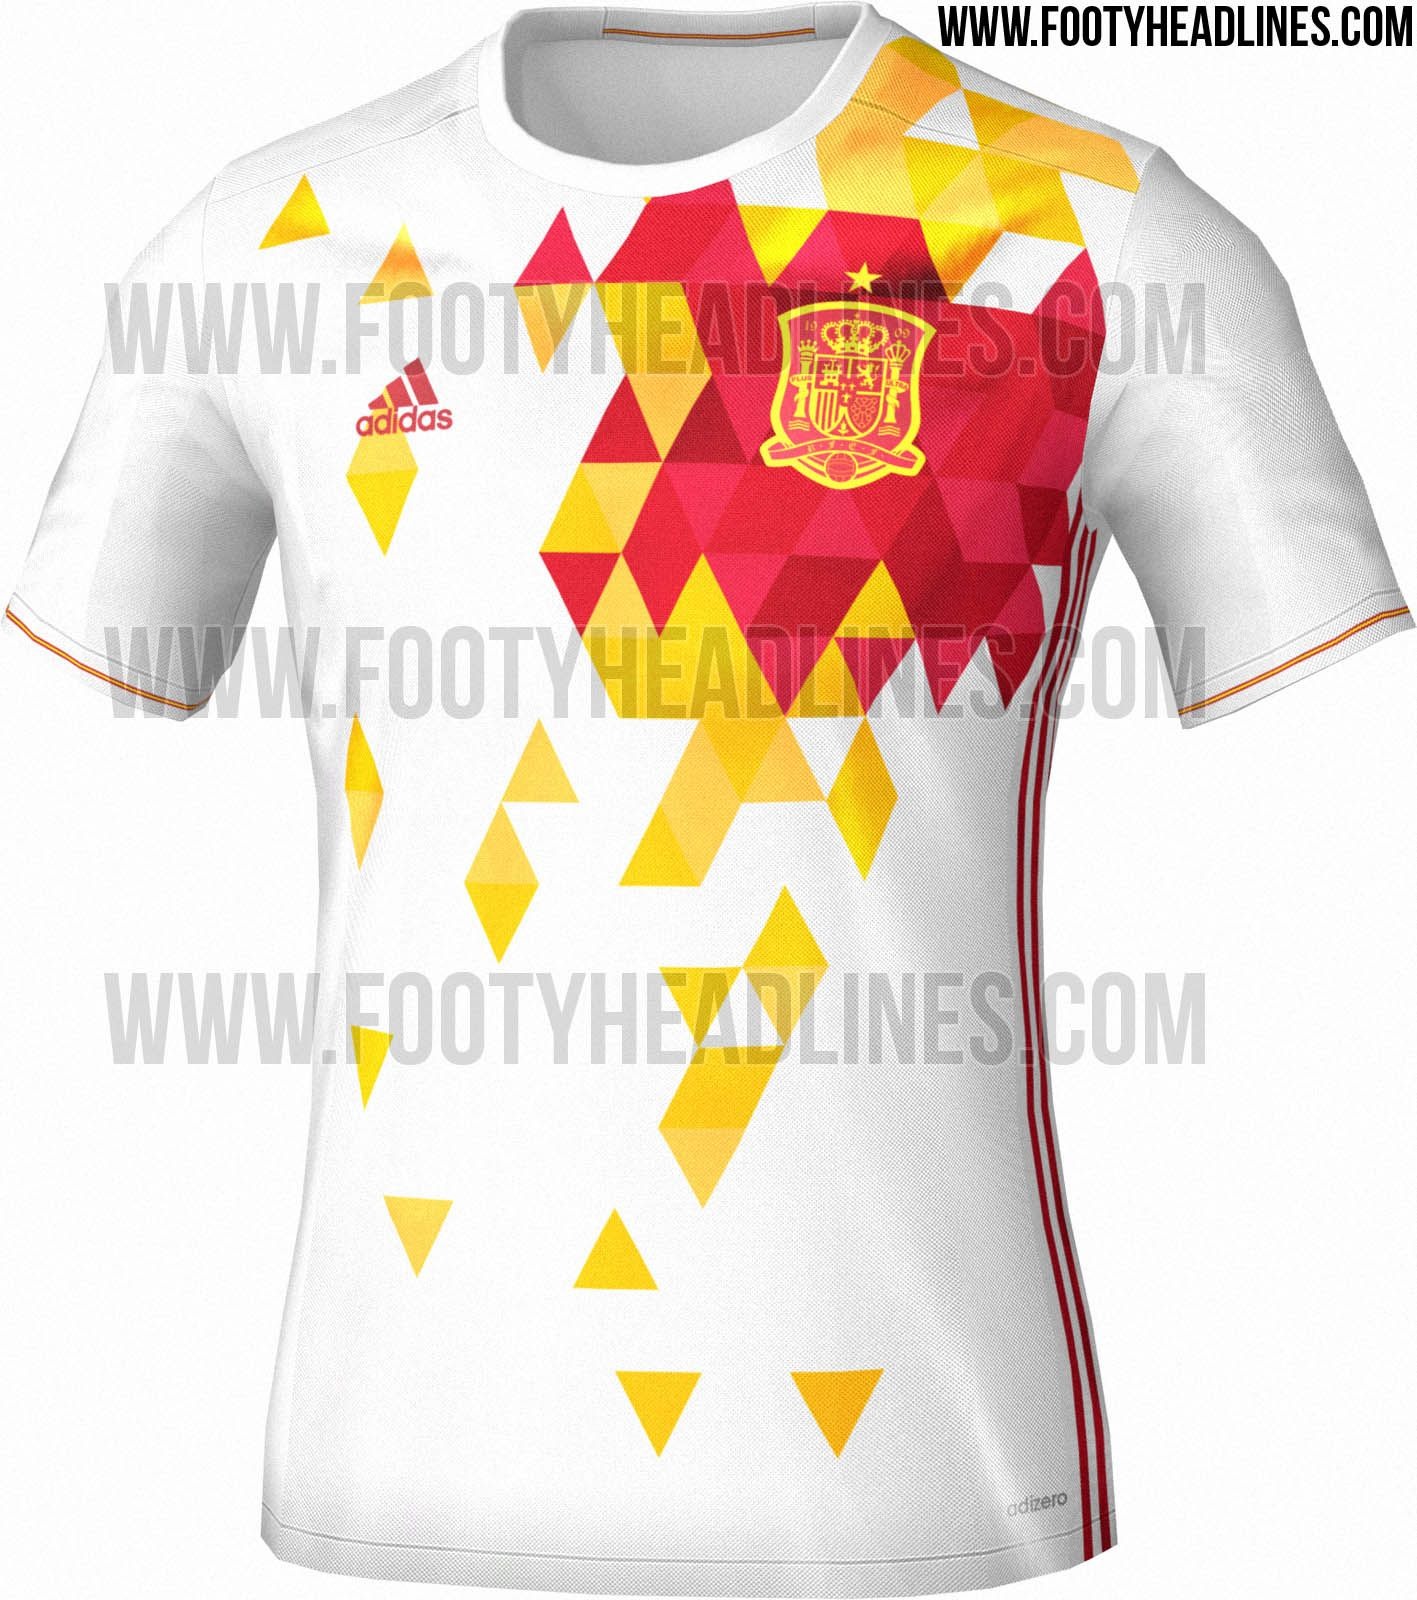 Made by Adidas, the new Spain Euro 2016 Away Kit boasts a vibrant front  pattern in red and yellow, inspired by the emotions of Spanish football.